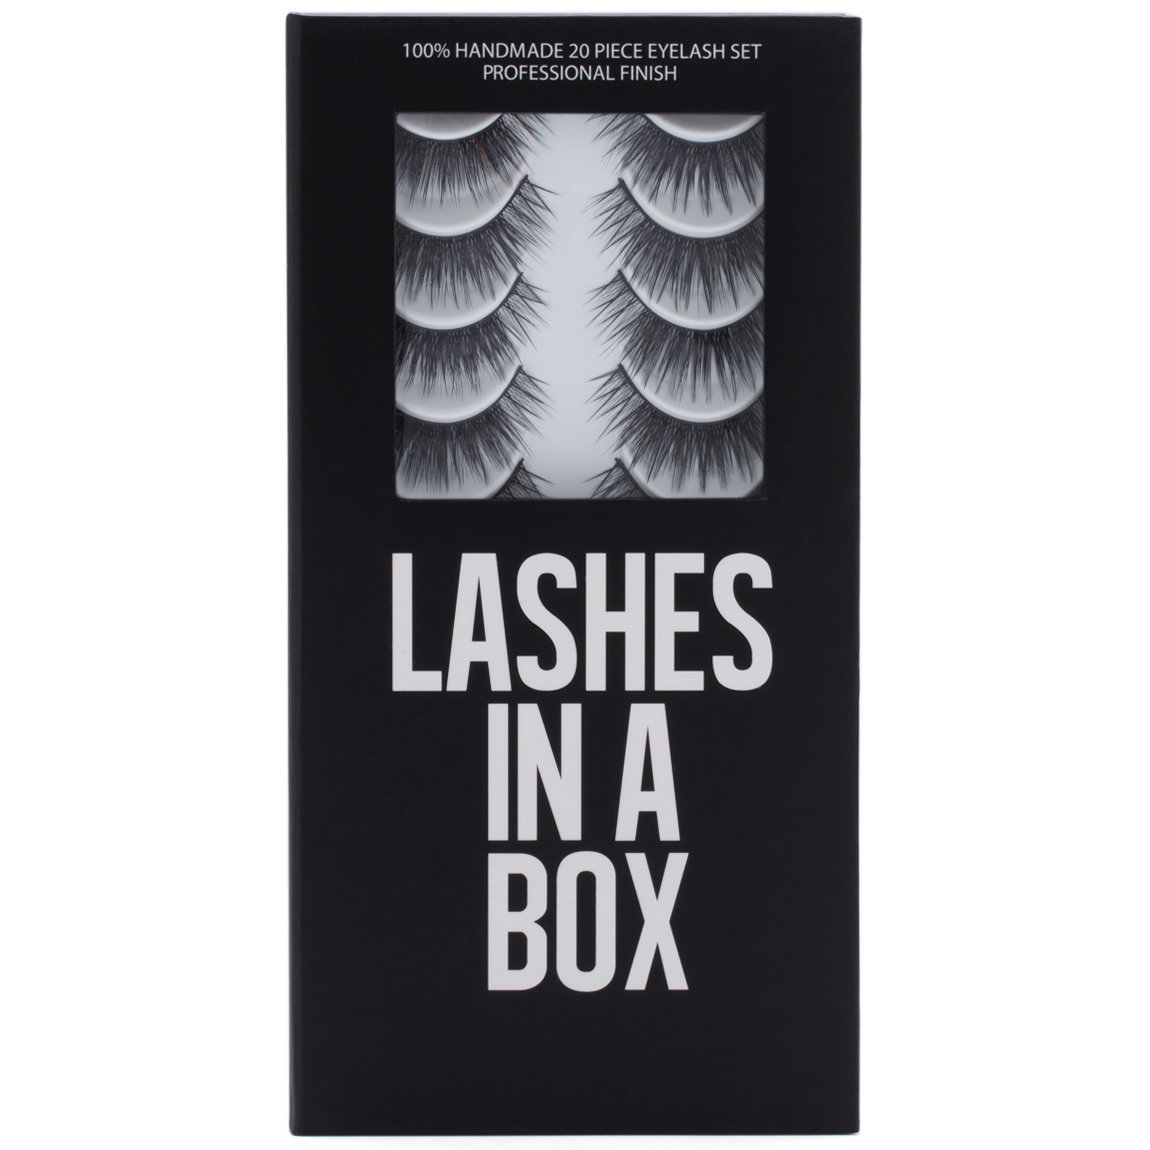 LASHES IN A BOX N°13 product swatch.